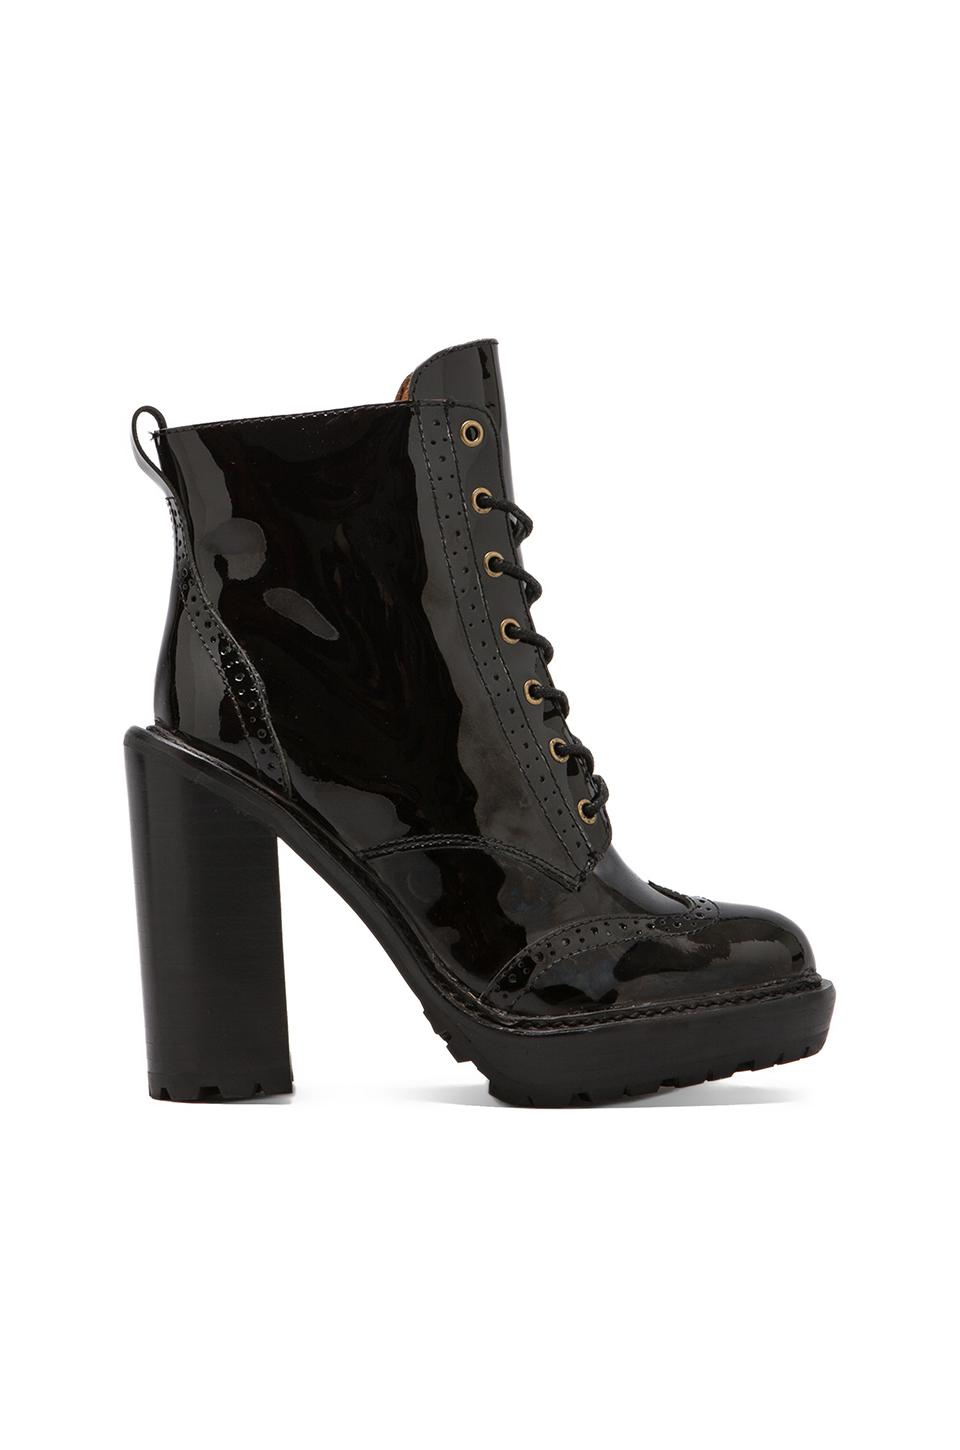 Jeffrey Campbell Forks Lace Up Leather Boot in Black Leather